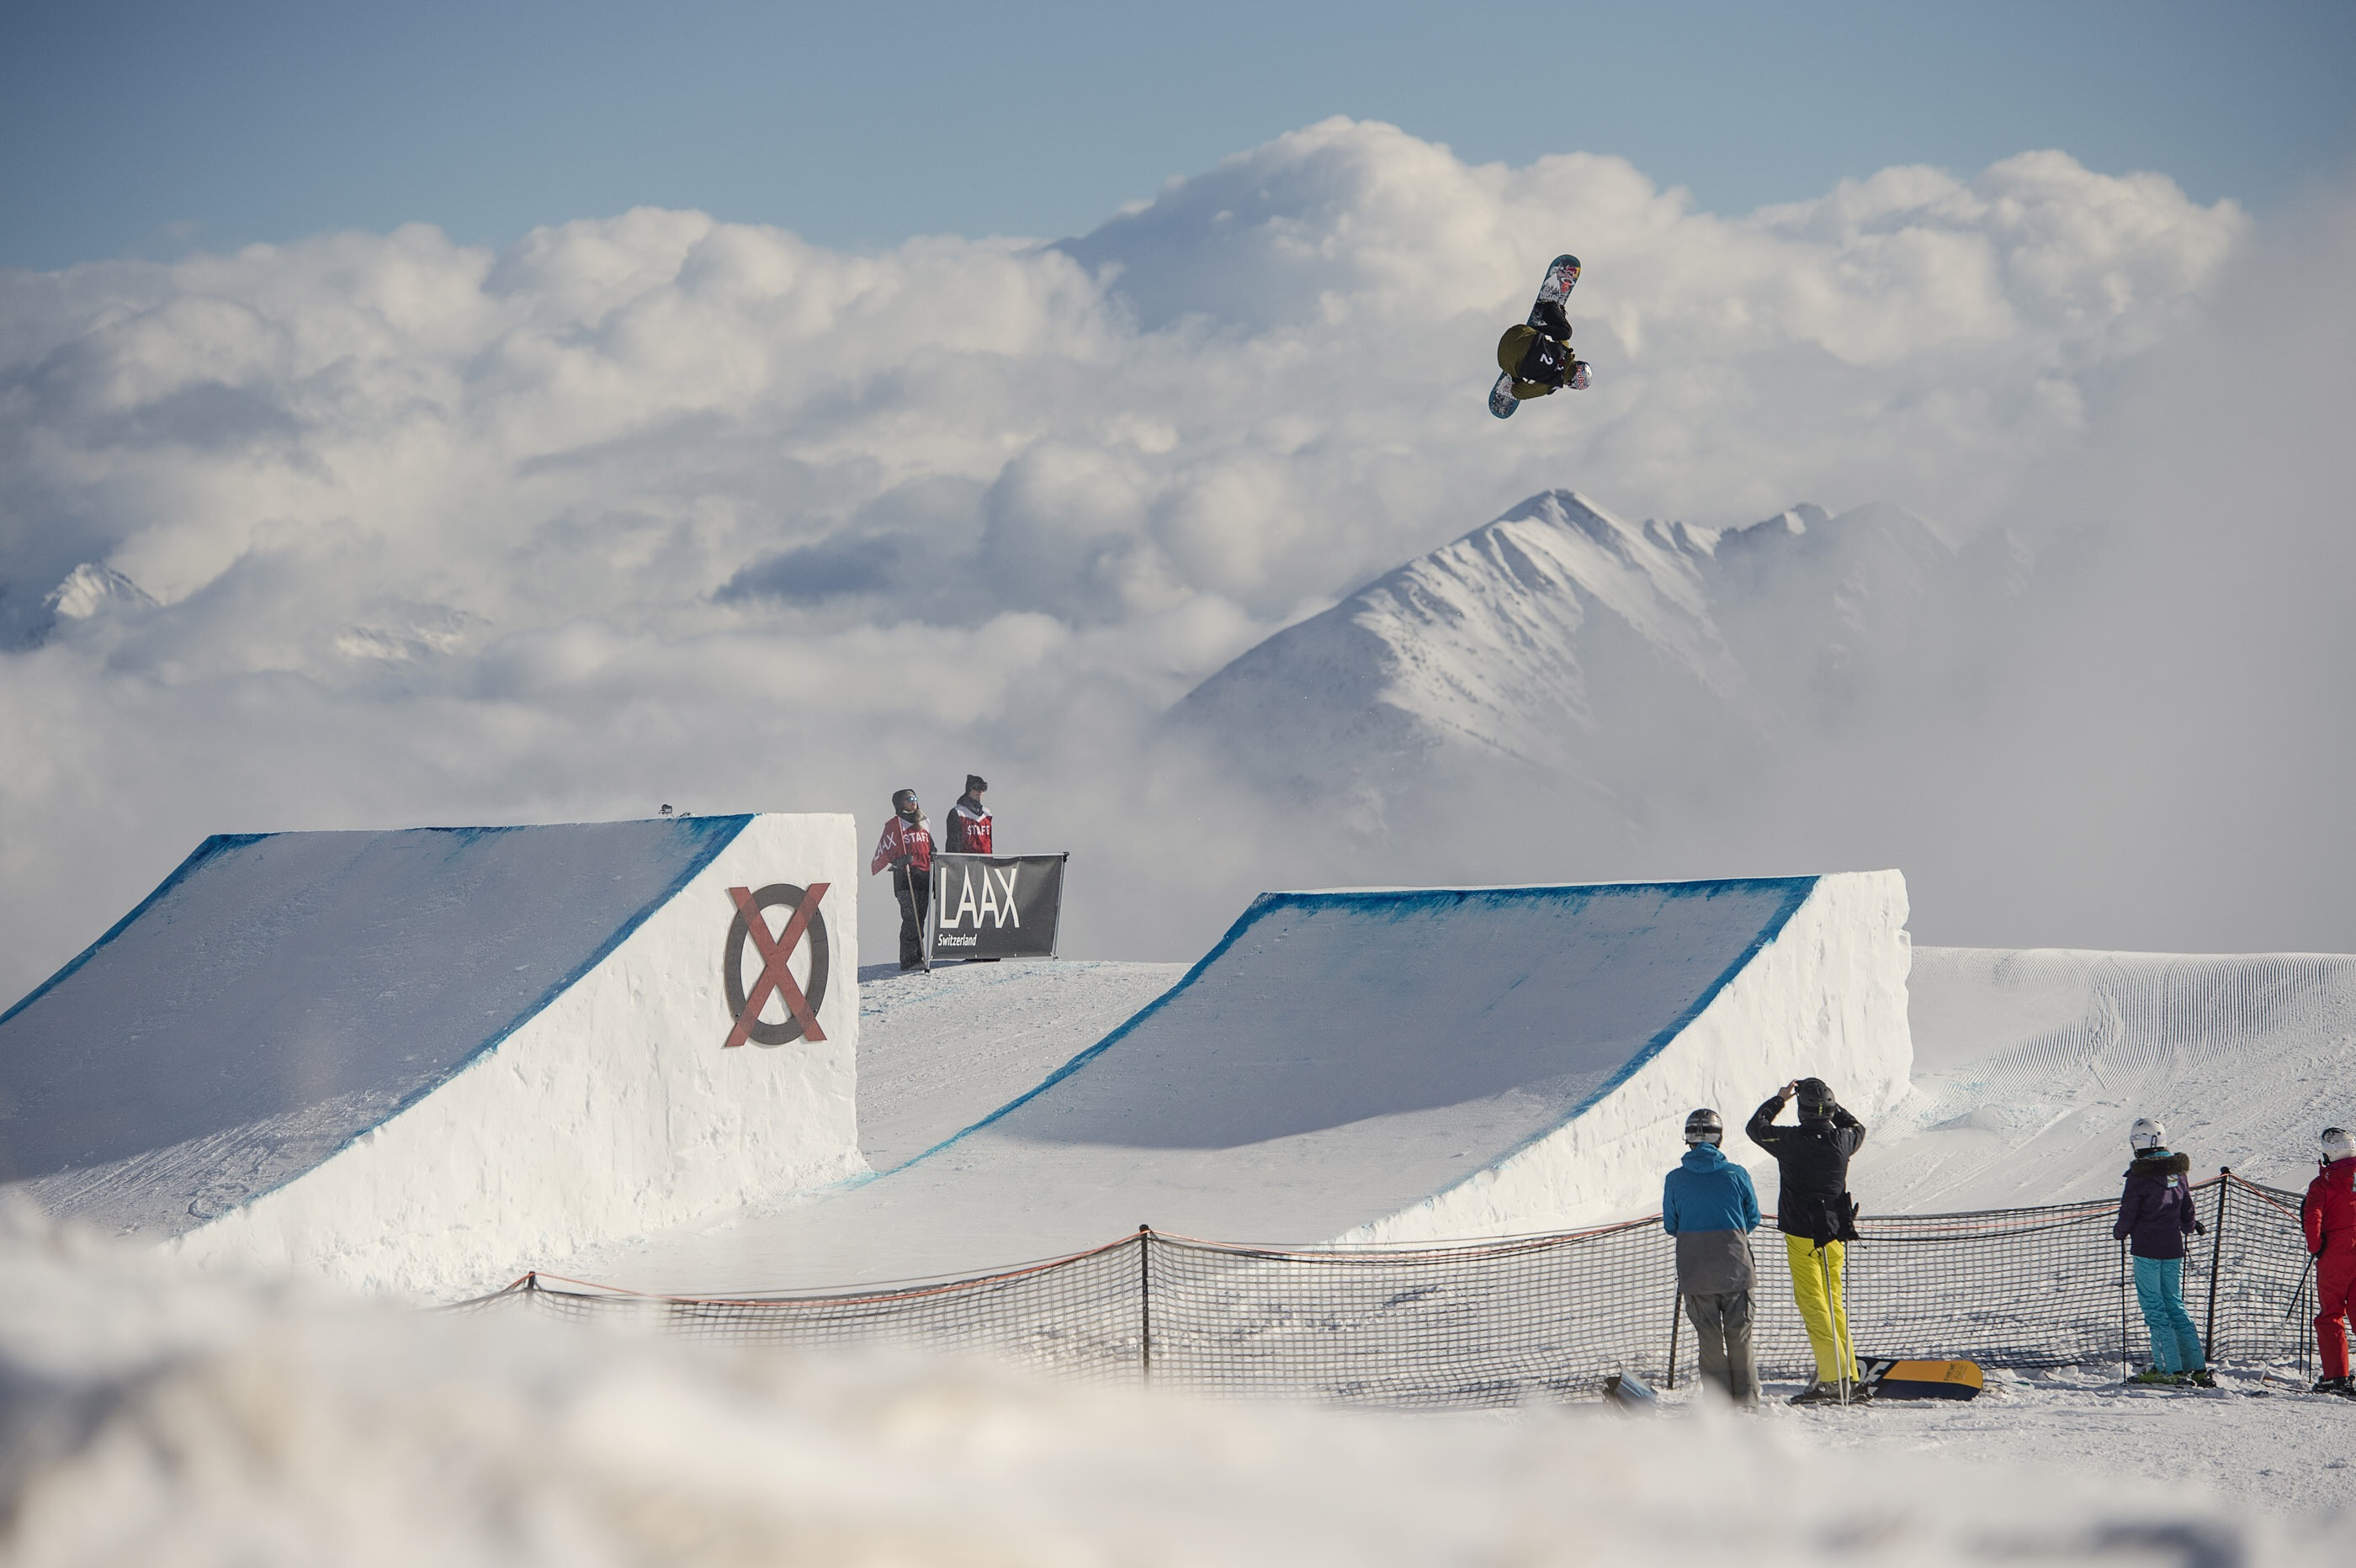 Canadian, Mark McMorris, and USA's, Jamie Anderson win 2016 LAAX OPEN Slopestyle Titles